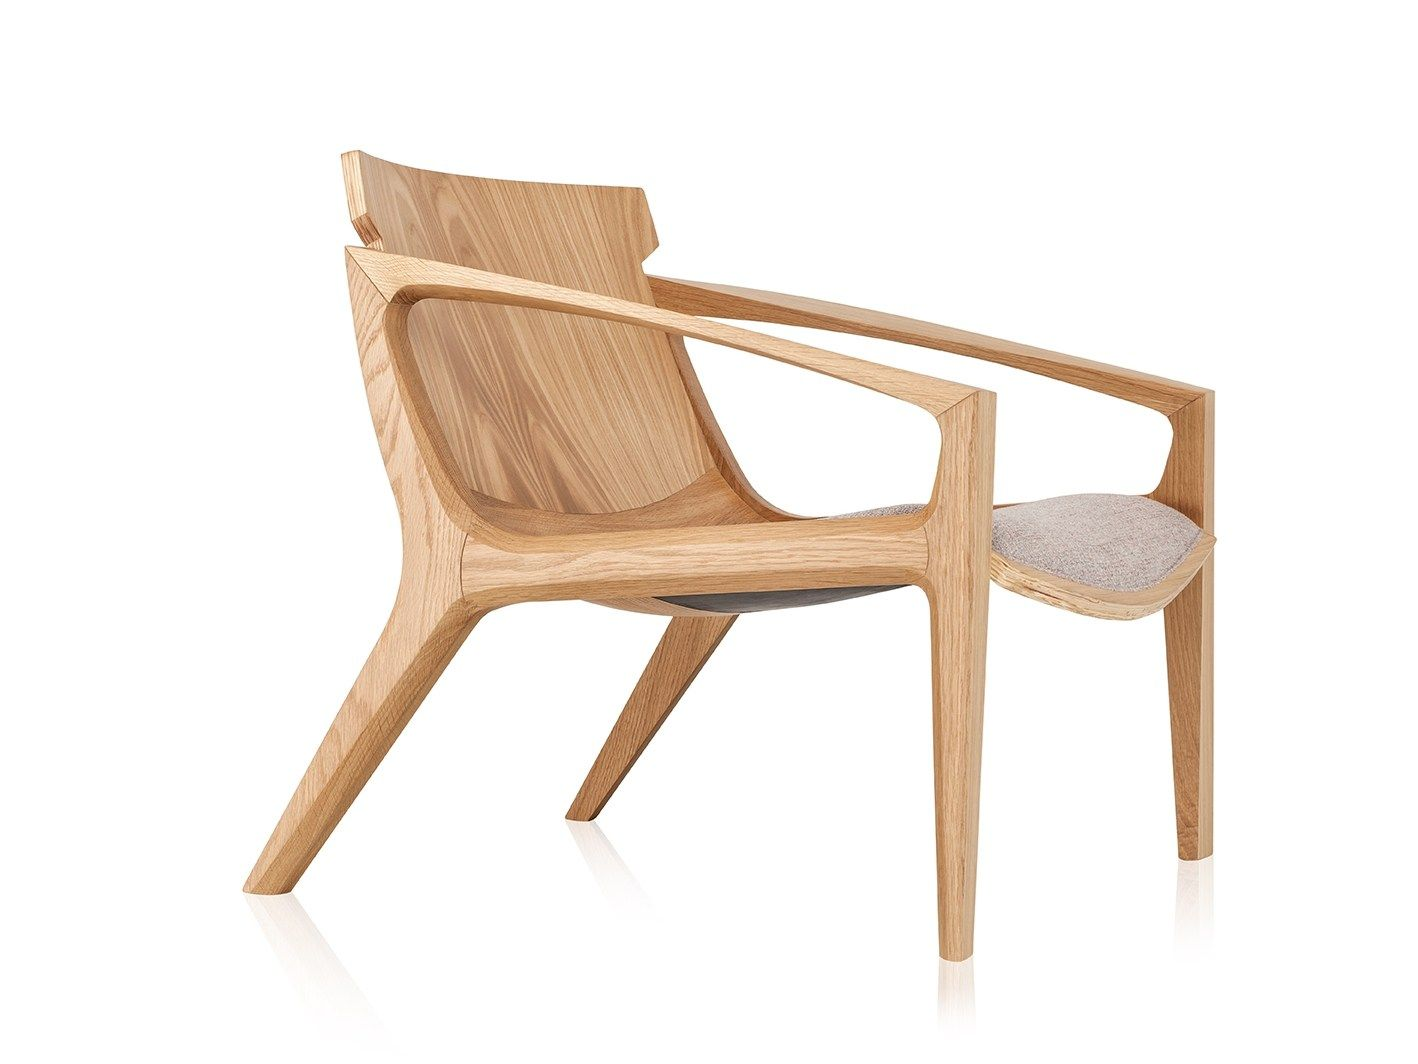 Delightful Solid Wood Armchair With Armrests LINNA By Sollos Design Jader Almeida